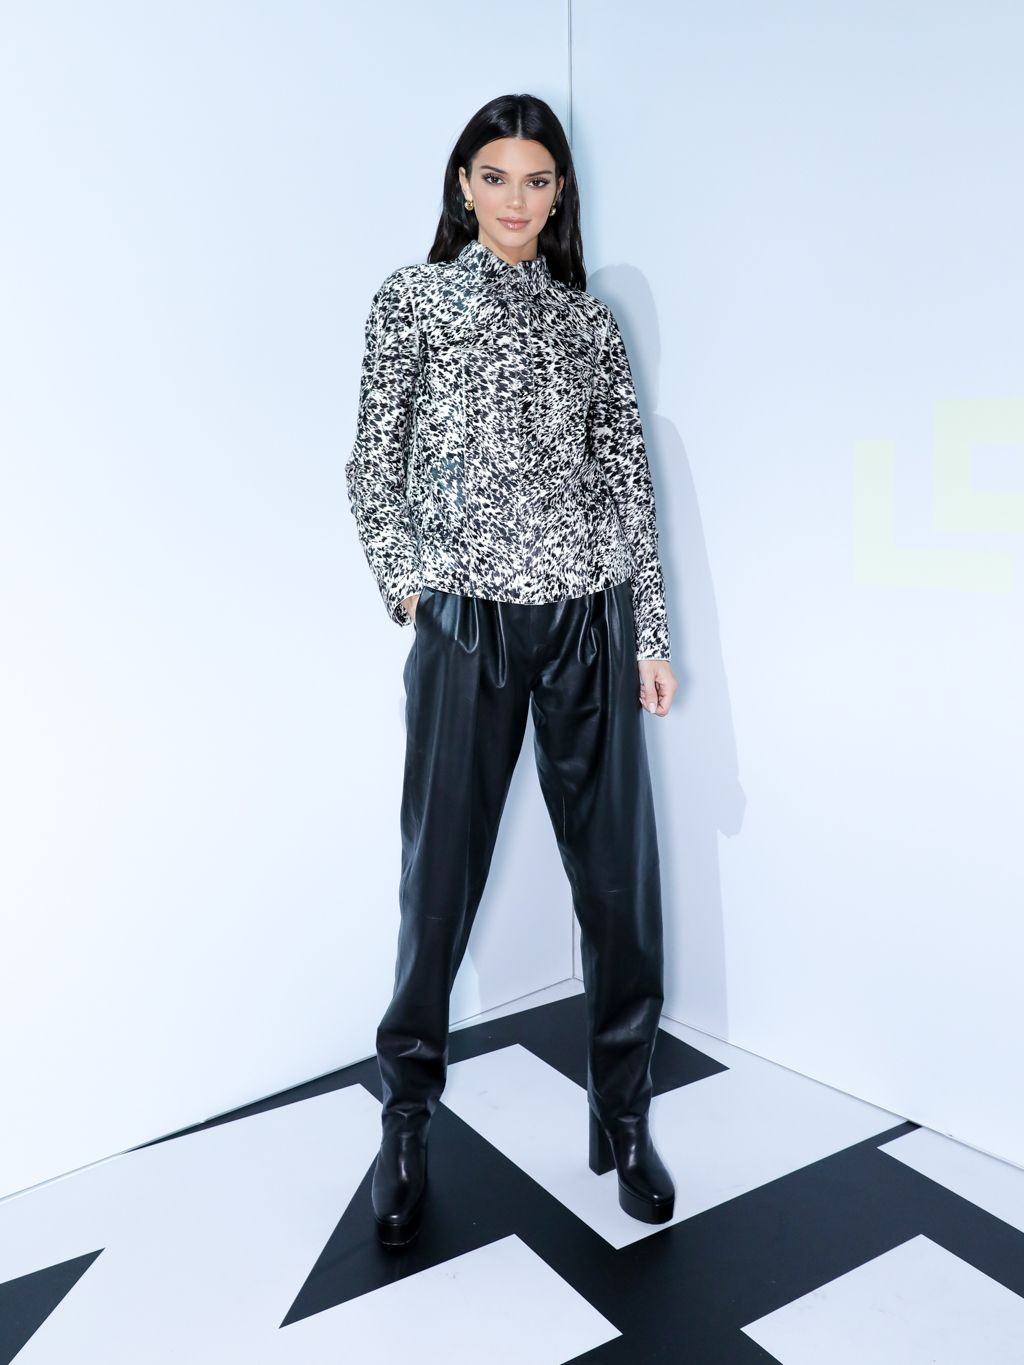 Kendall Jenner Kendall Jenner celebrated the launch of Longchamp LGP in New York City on May 14.